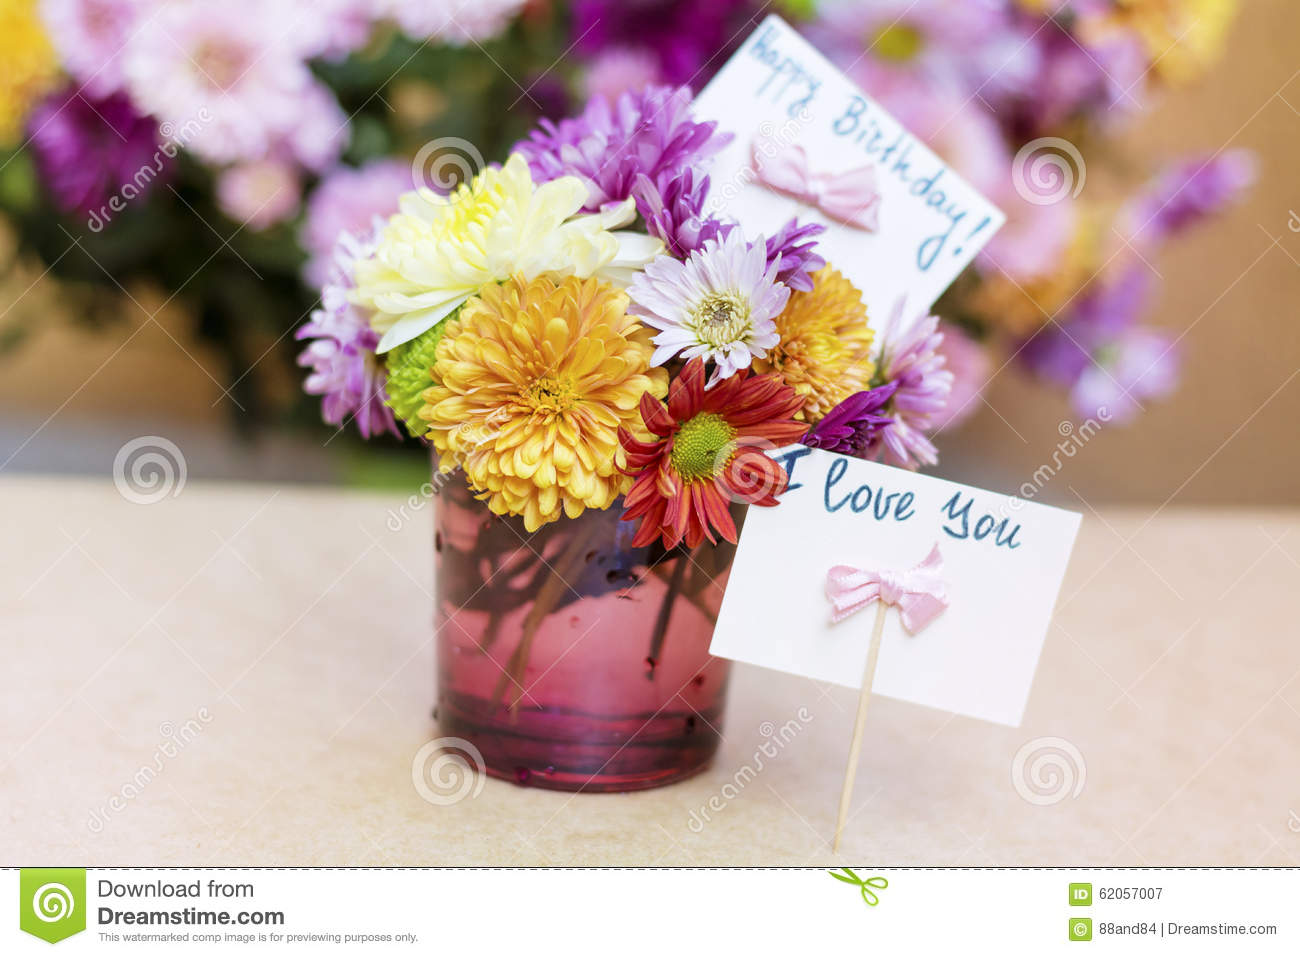 Chrysanthemums flowers in purple glass vase with happy birthday card download chrysanthemums flowers in purple glass vase with happy birthday card stock image image of izmirmasajfo